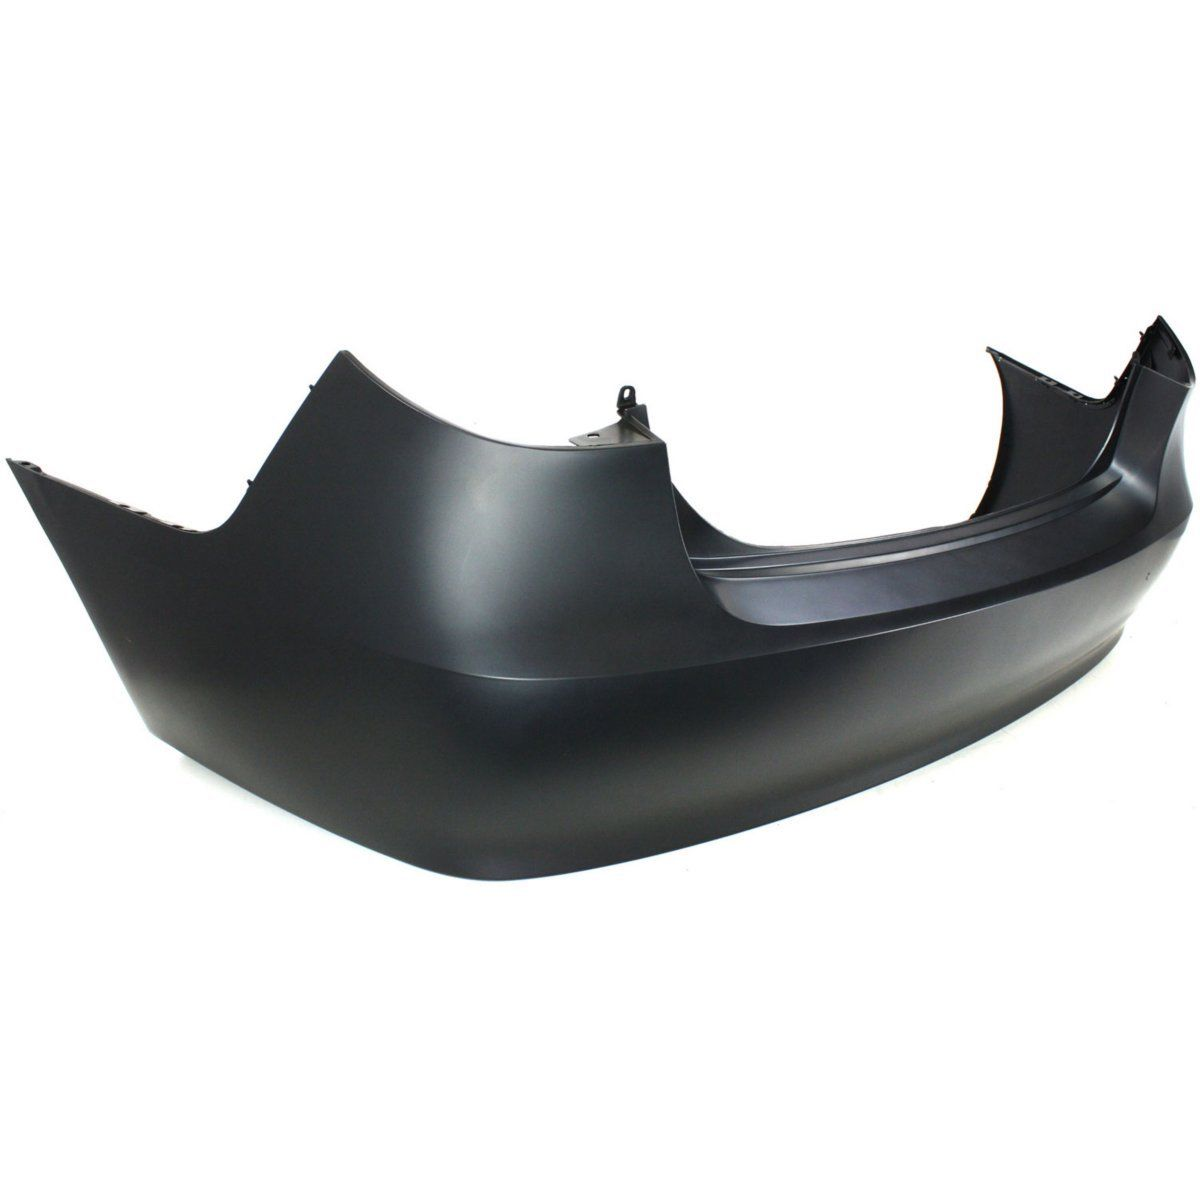 2007-2010 HYUNDAI ELANTRA Rear Bumper Cover Sedan Painted to Match